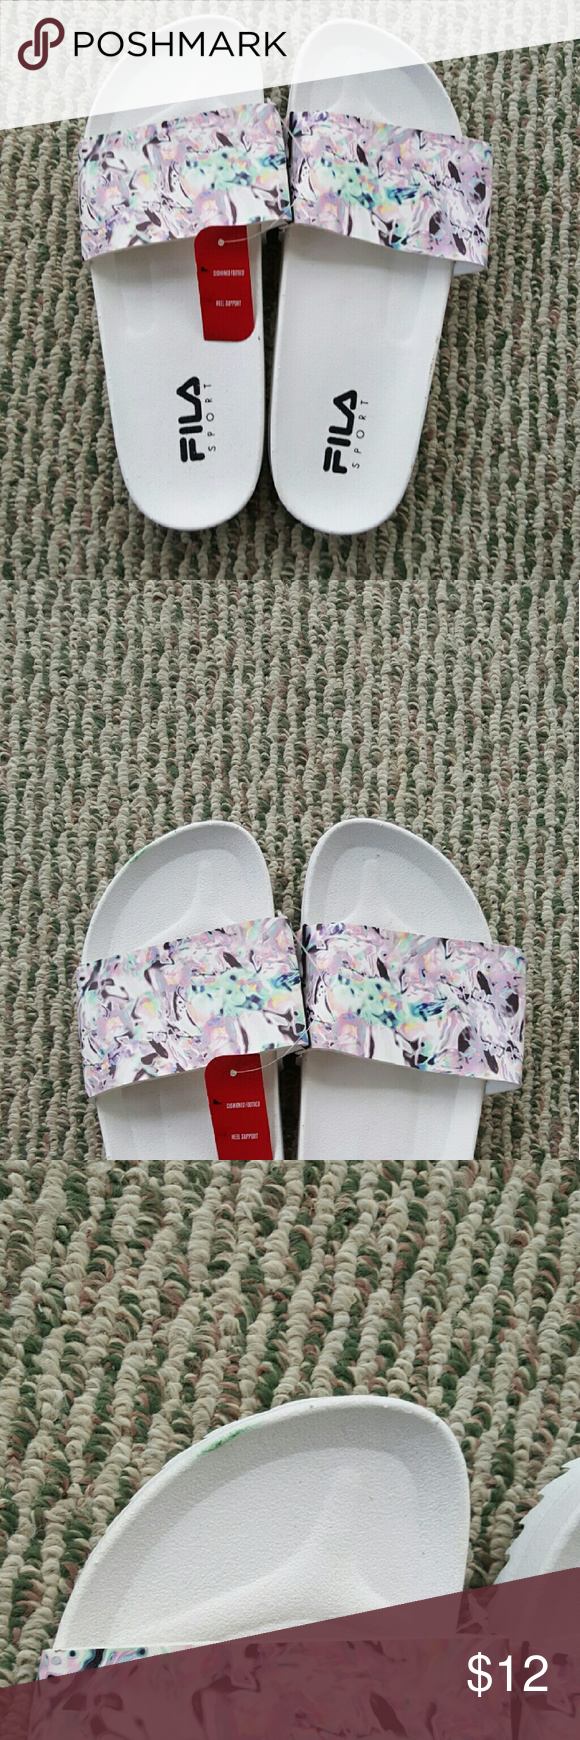 White Fila slides Brand new with tags, white slides from Fila Sport. White bottom with sort of a watercolor print top. Size large 9/10. Small green mark on tip of left shoe. Fila Shoes